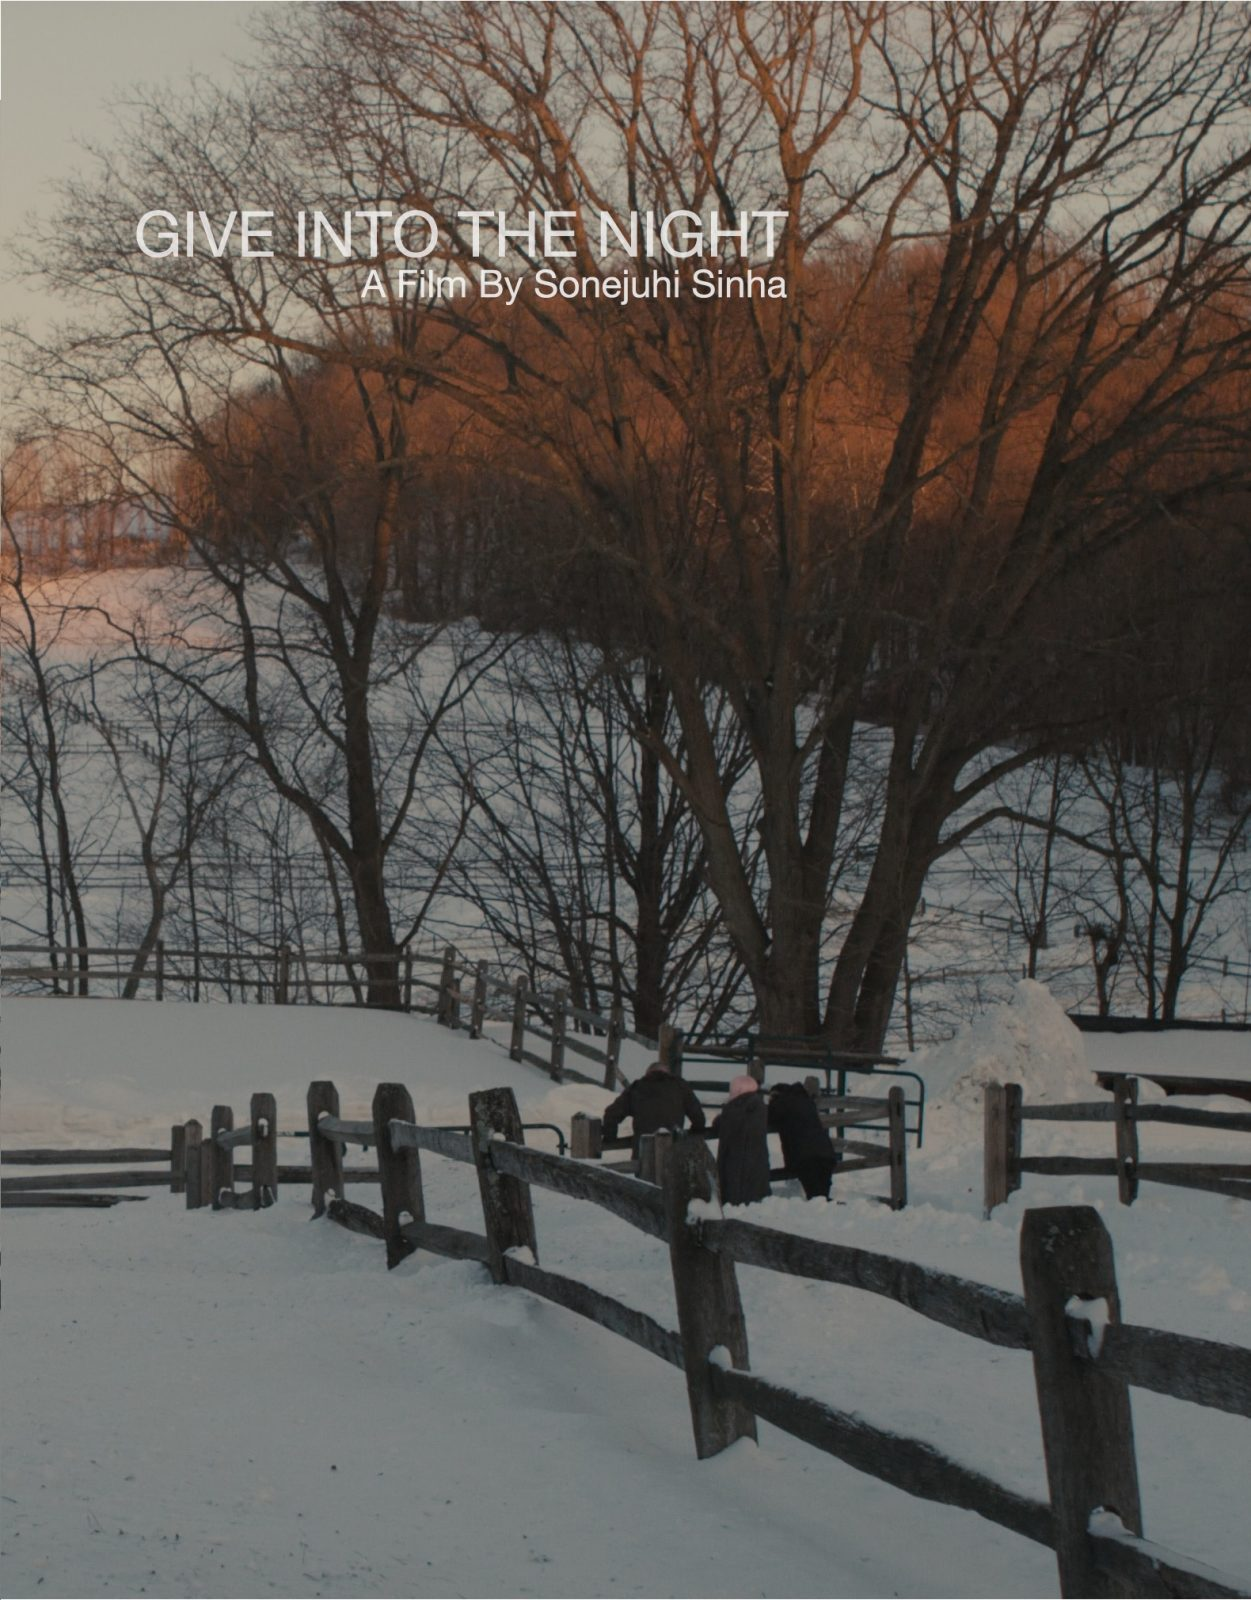 GIVEINTOTHENIGHT poster